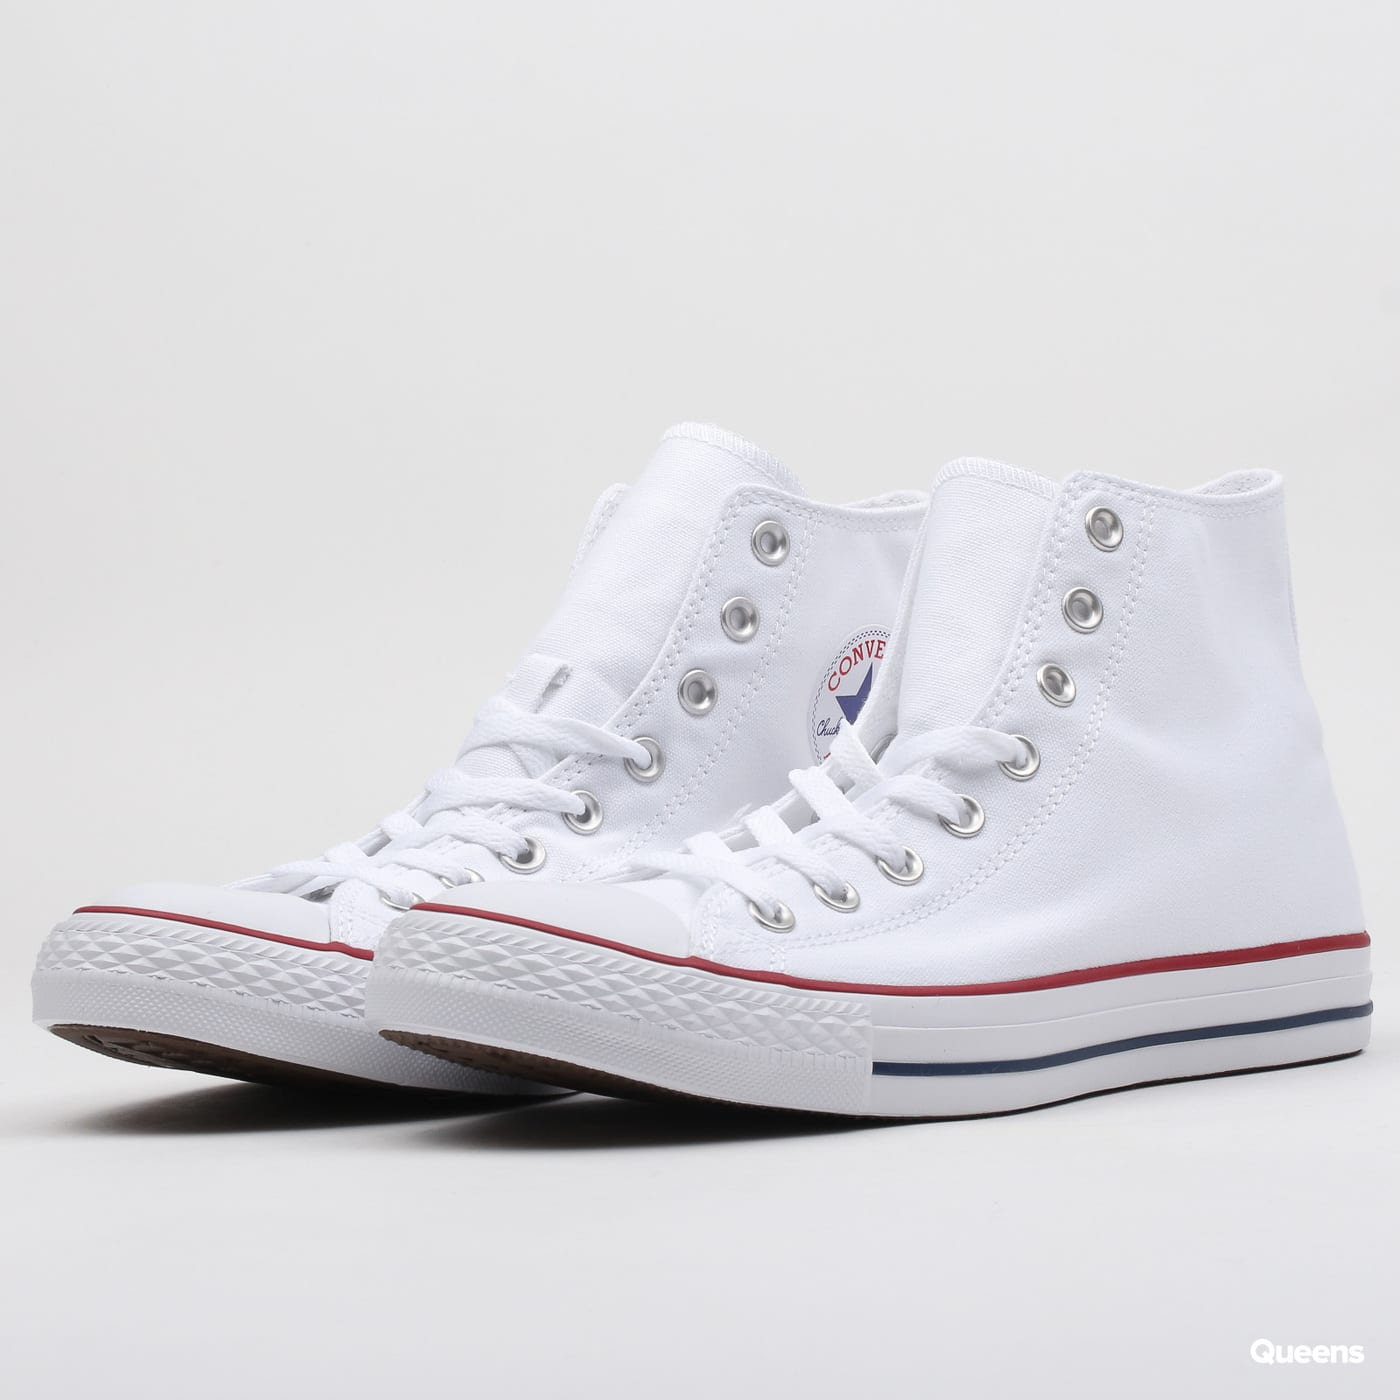 Converse Chuck Taylor All Star Hi optic white